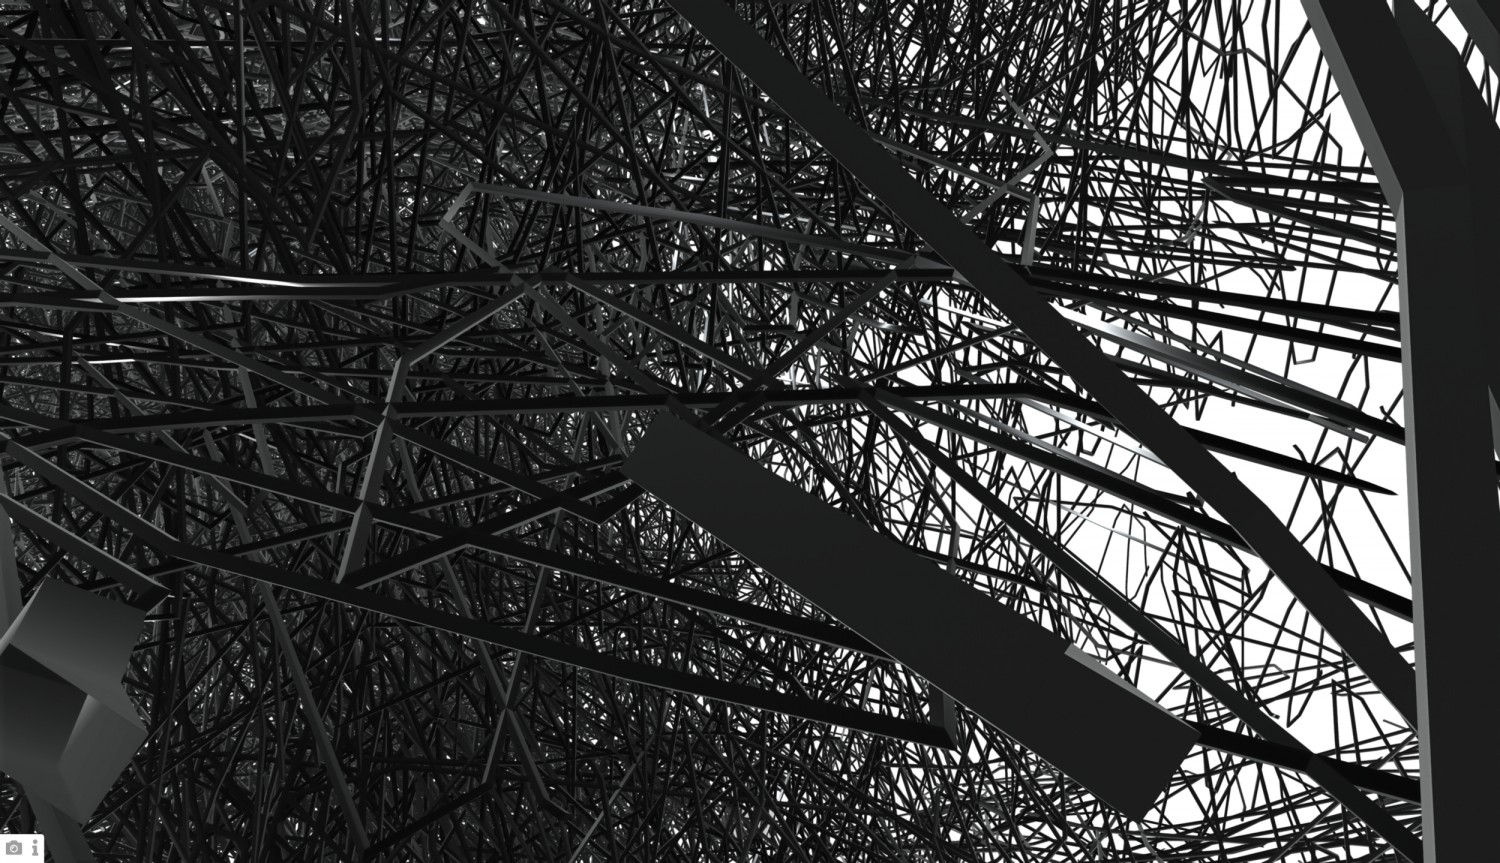 """Screenshot of the project page """"Mirror Montage (wire mesh)"""" by artist Gottfried Jäger in collaboration with Denise Albrecht, Marta Beauchamp and Sonja Mense."""